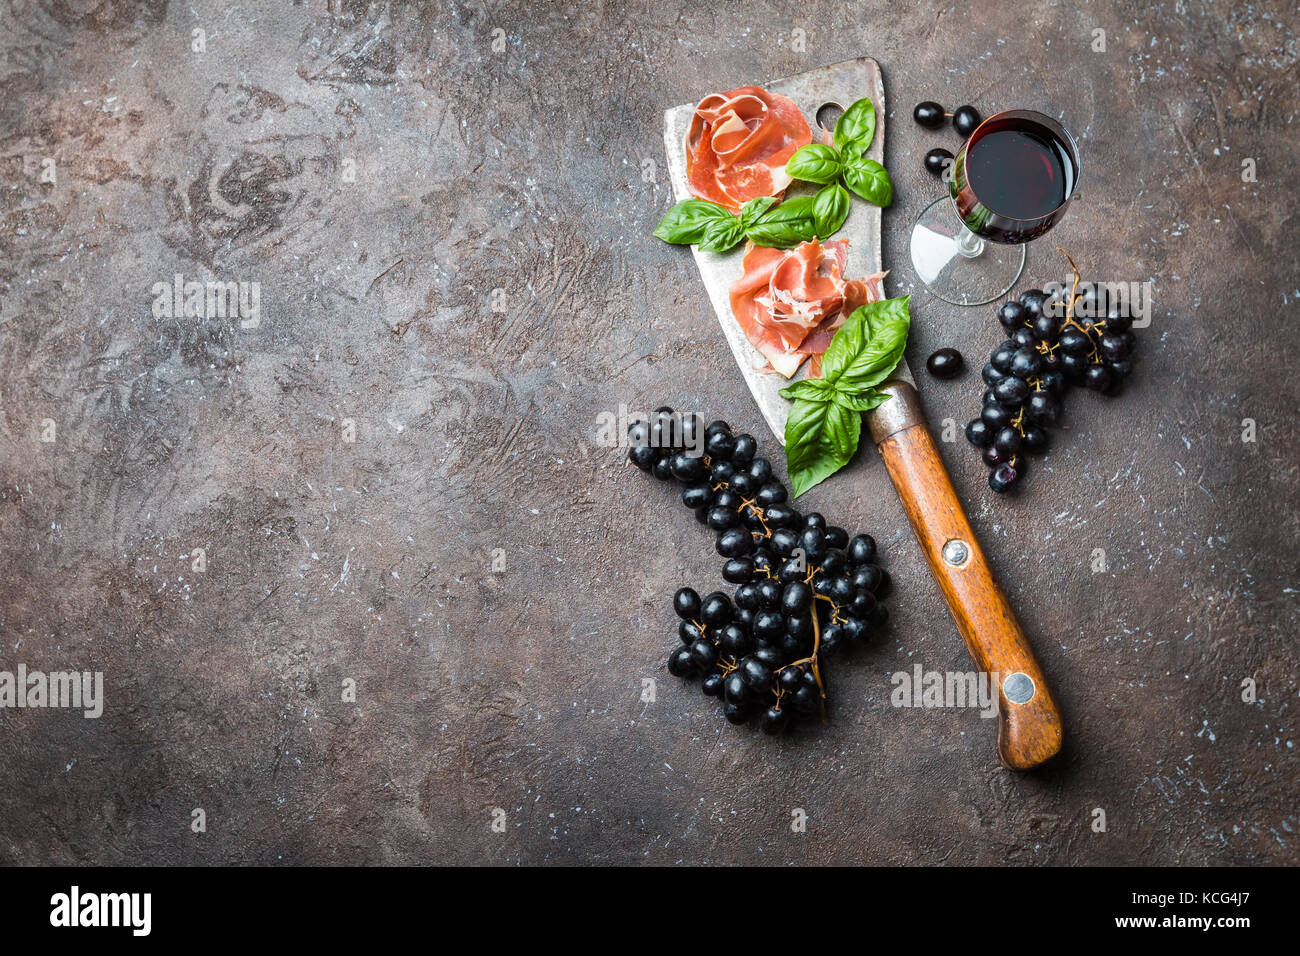 Sliced jamon with butcher knife, grapes and wine. Parma ham hamon on wooden background with copy space, top view. - Stock Image